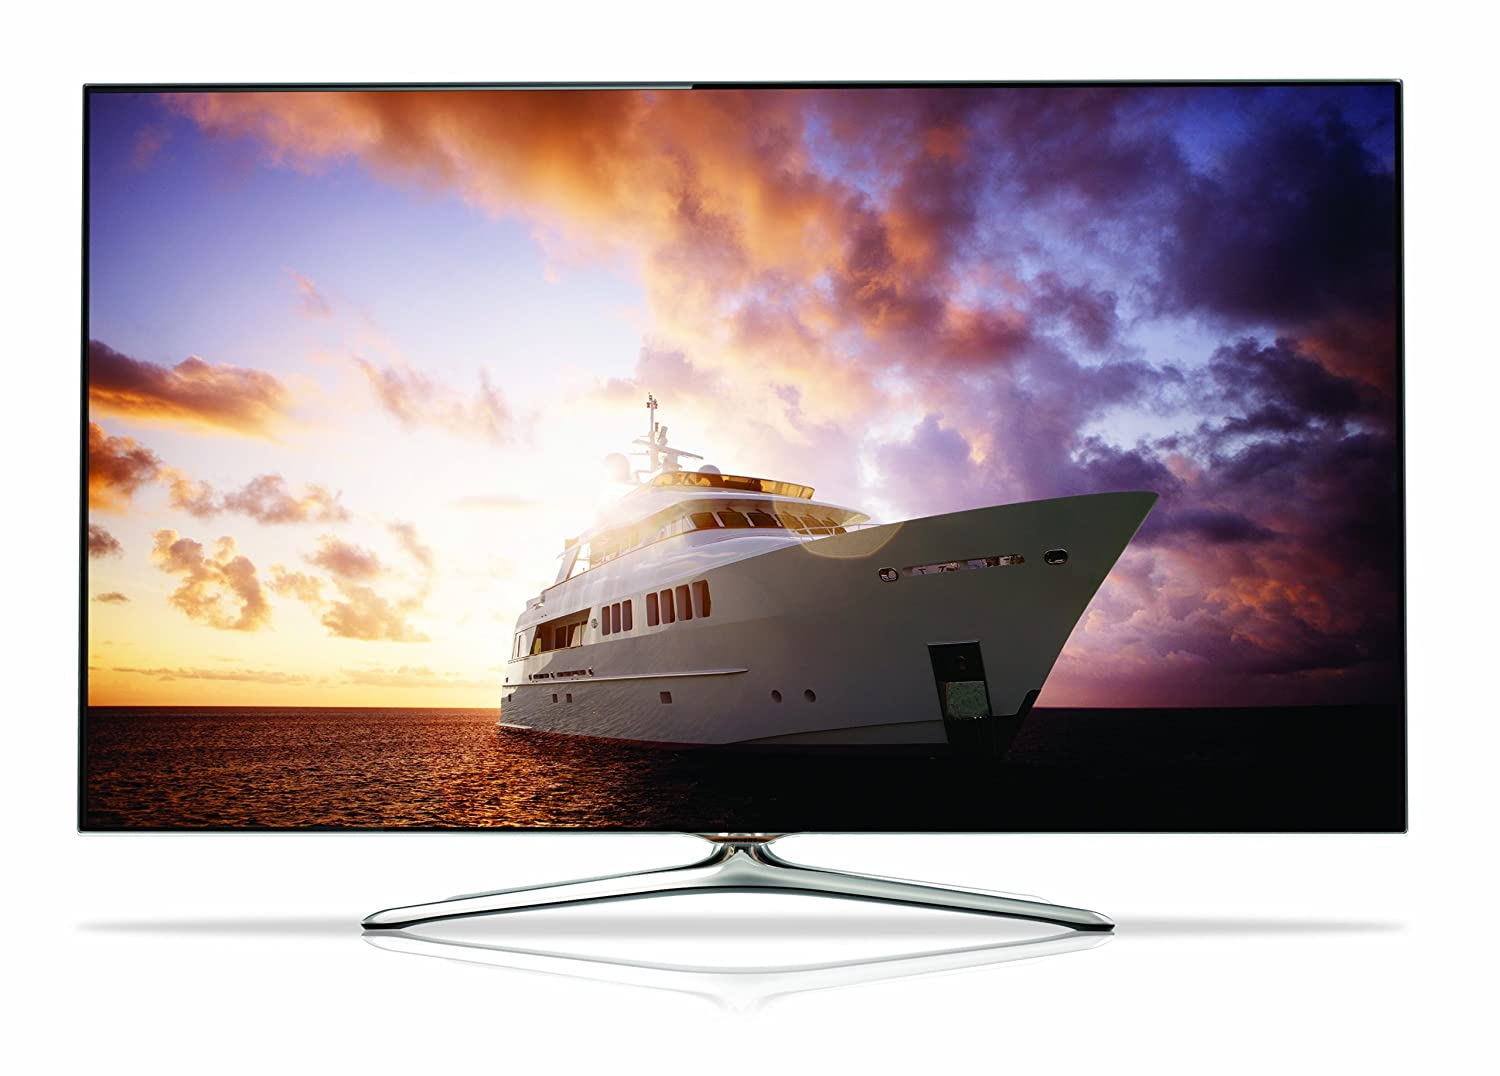 Samsung UN60F7100 60-Inch 1080p 240Hz 3D Ultra Slim Smart LED HDTV (2013 Model)